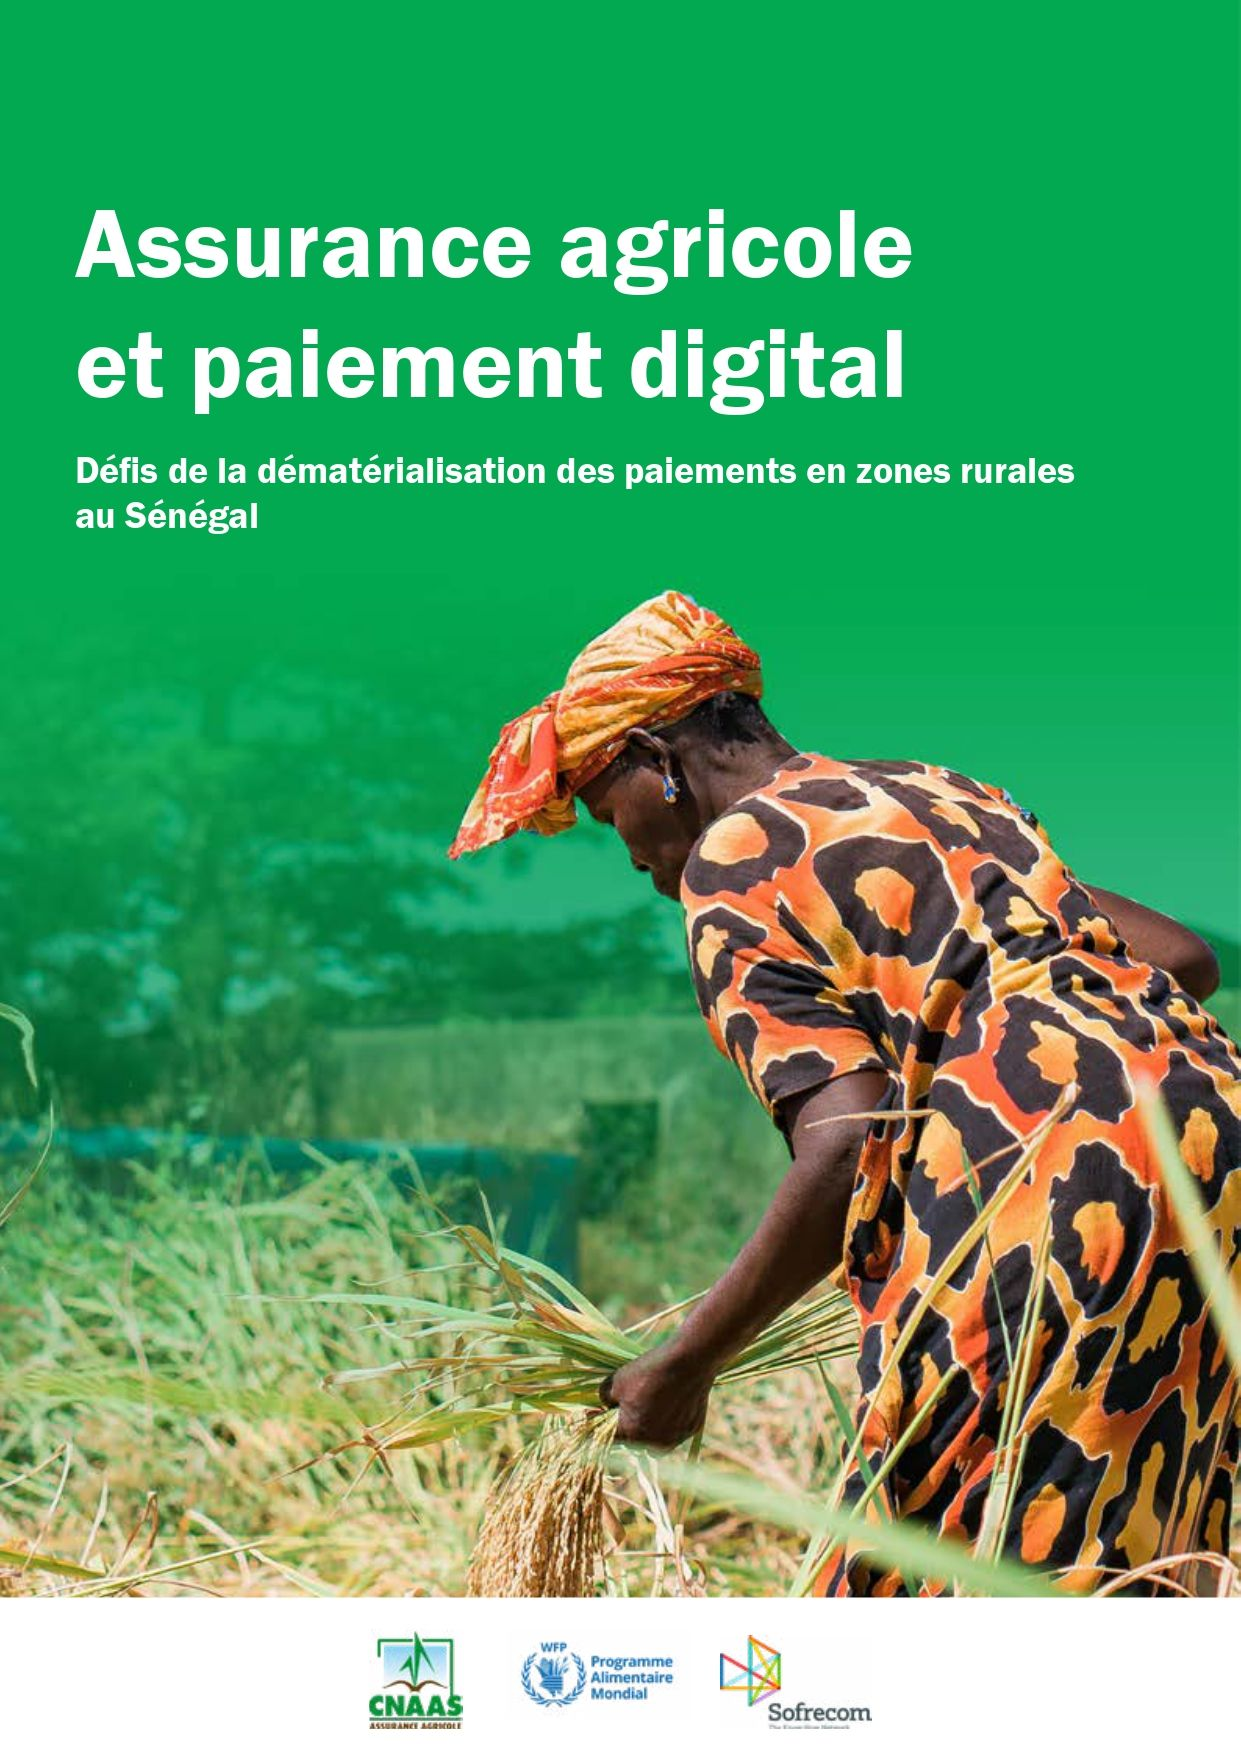 WFP_CNAAS_Sofrecom_Agricultural insurance & digital payments -Senegal case study_FR-1_page-0001.jpg